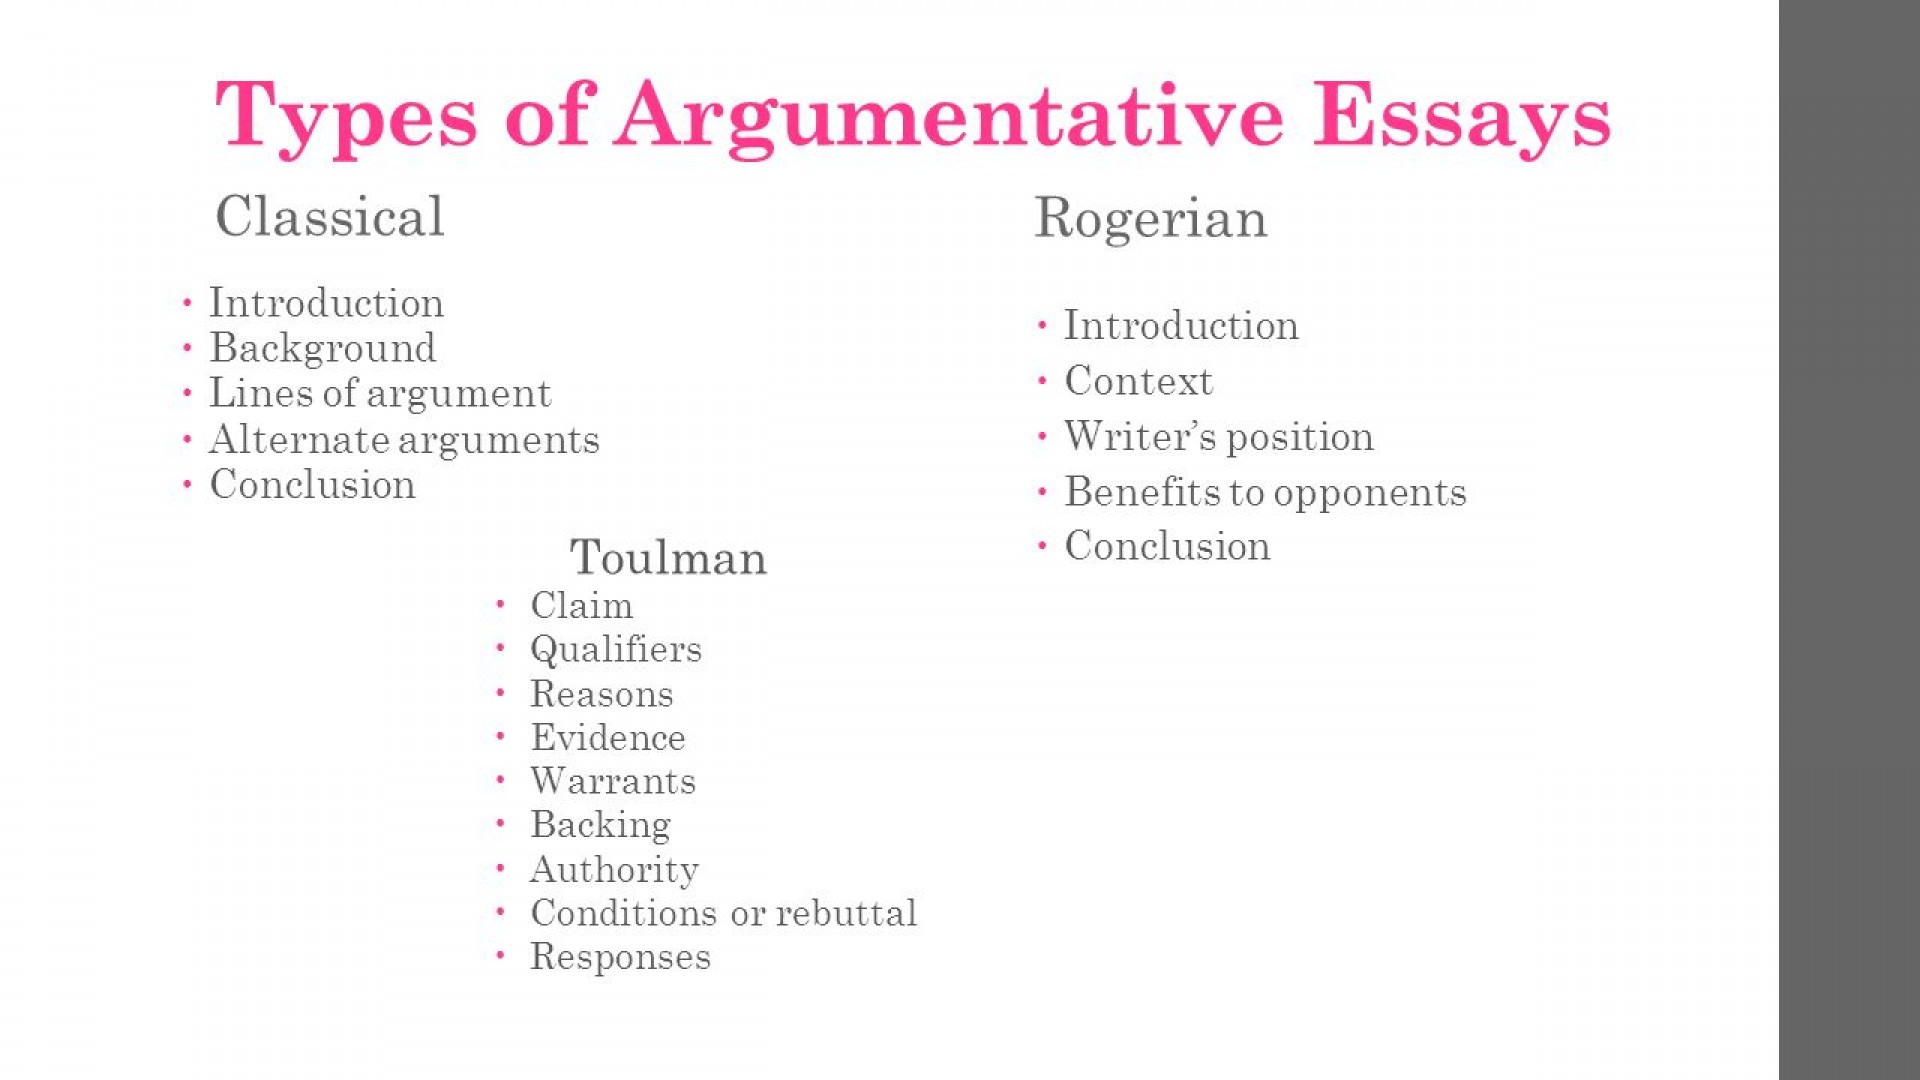 016 Essay Example How To Start Off An Argumentative Take Notes Ppt Video Online Download My Typesofargumentativee Good Examples Body Paragraph Striking End Of 1920